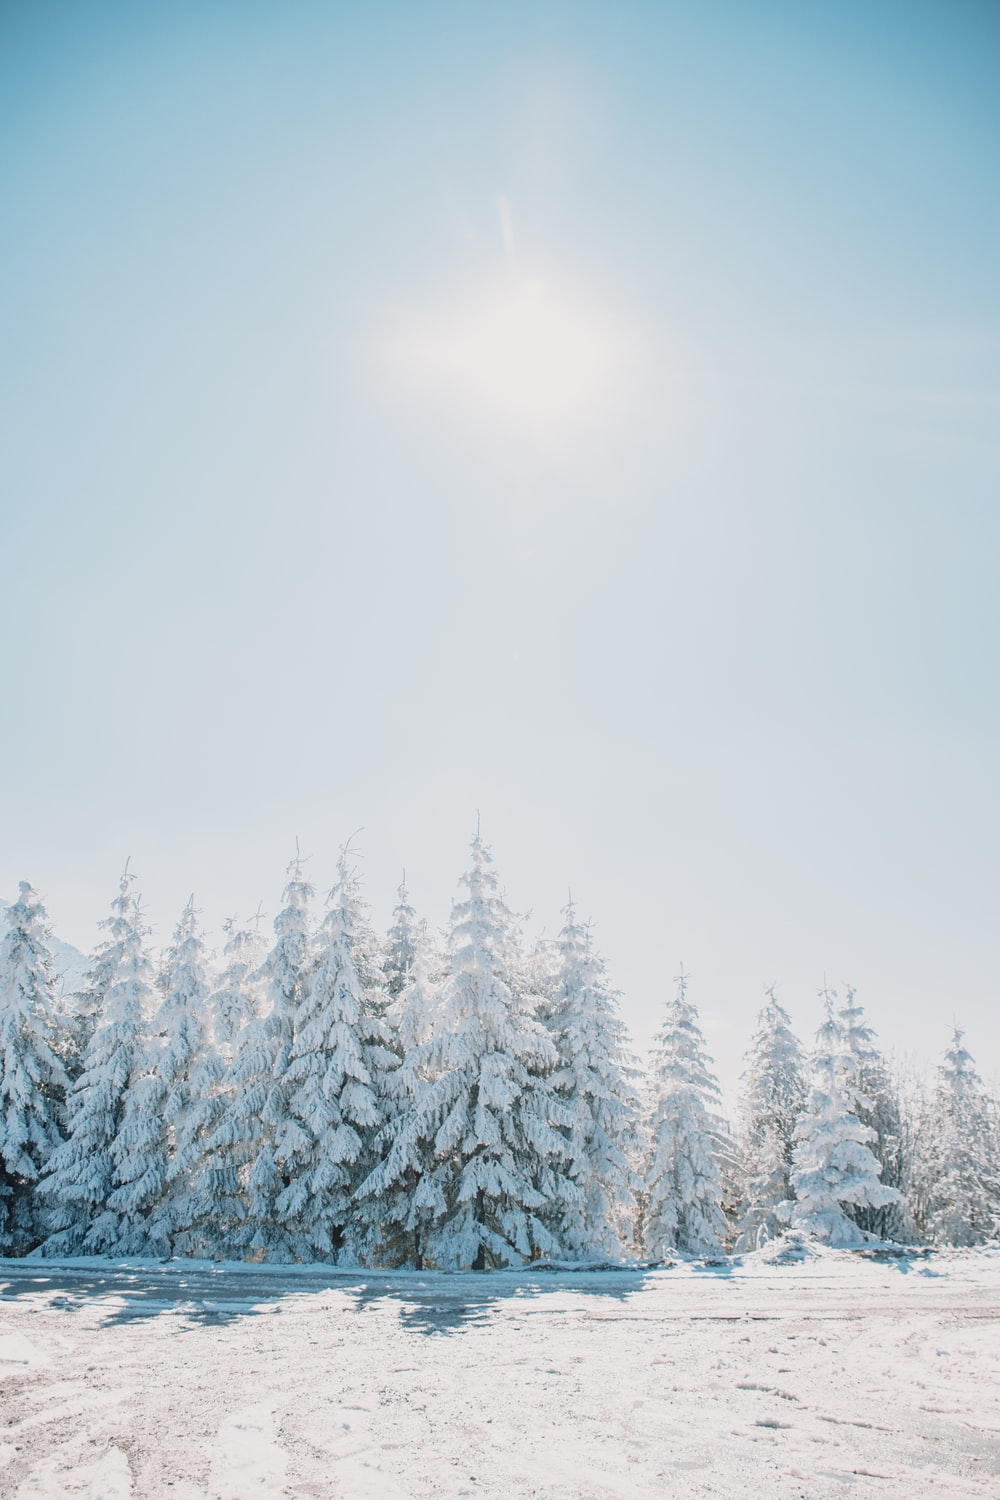 snow covered pine trees under white sky during daytime